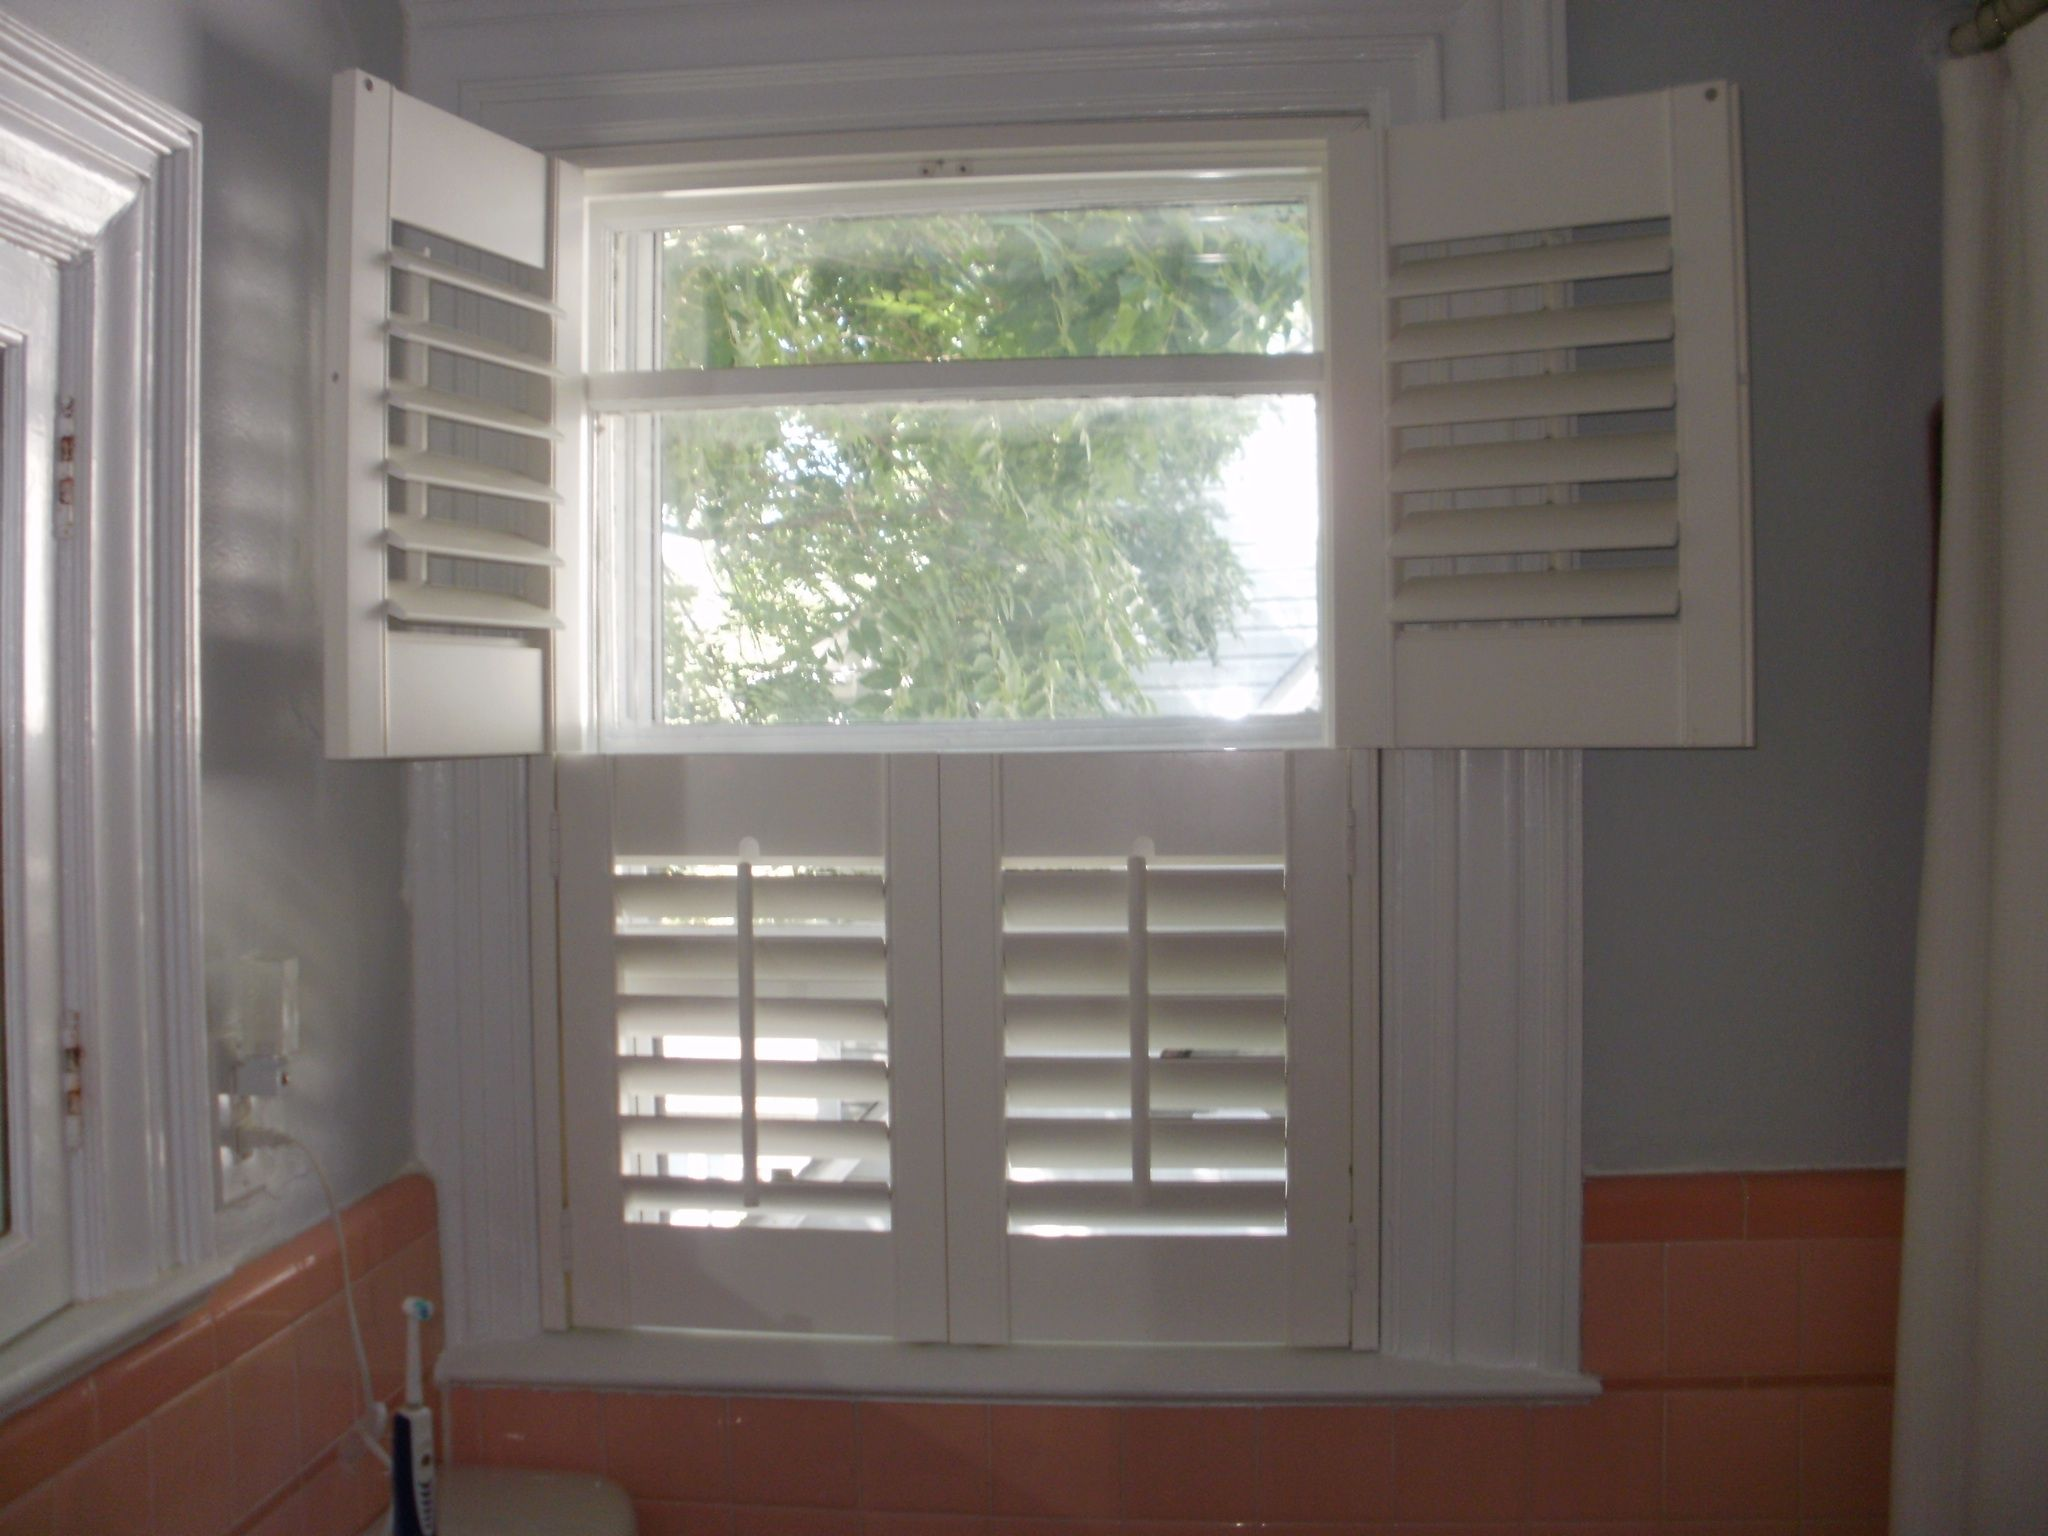 Double Hung Shutters Home Home Appliances Blinds